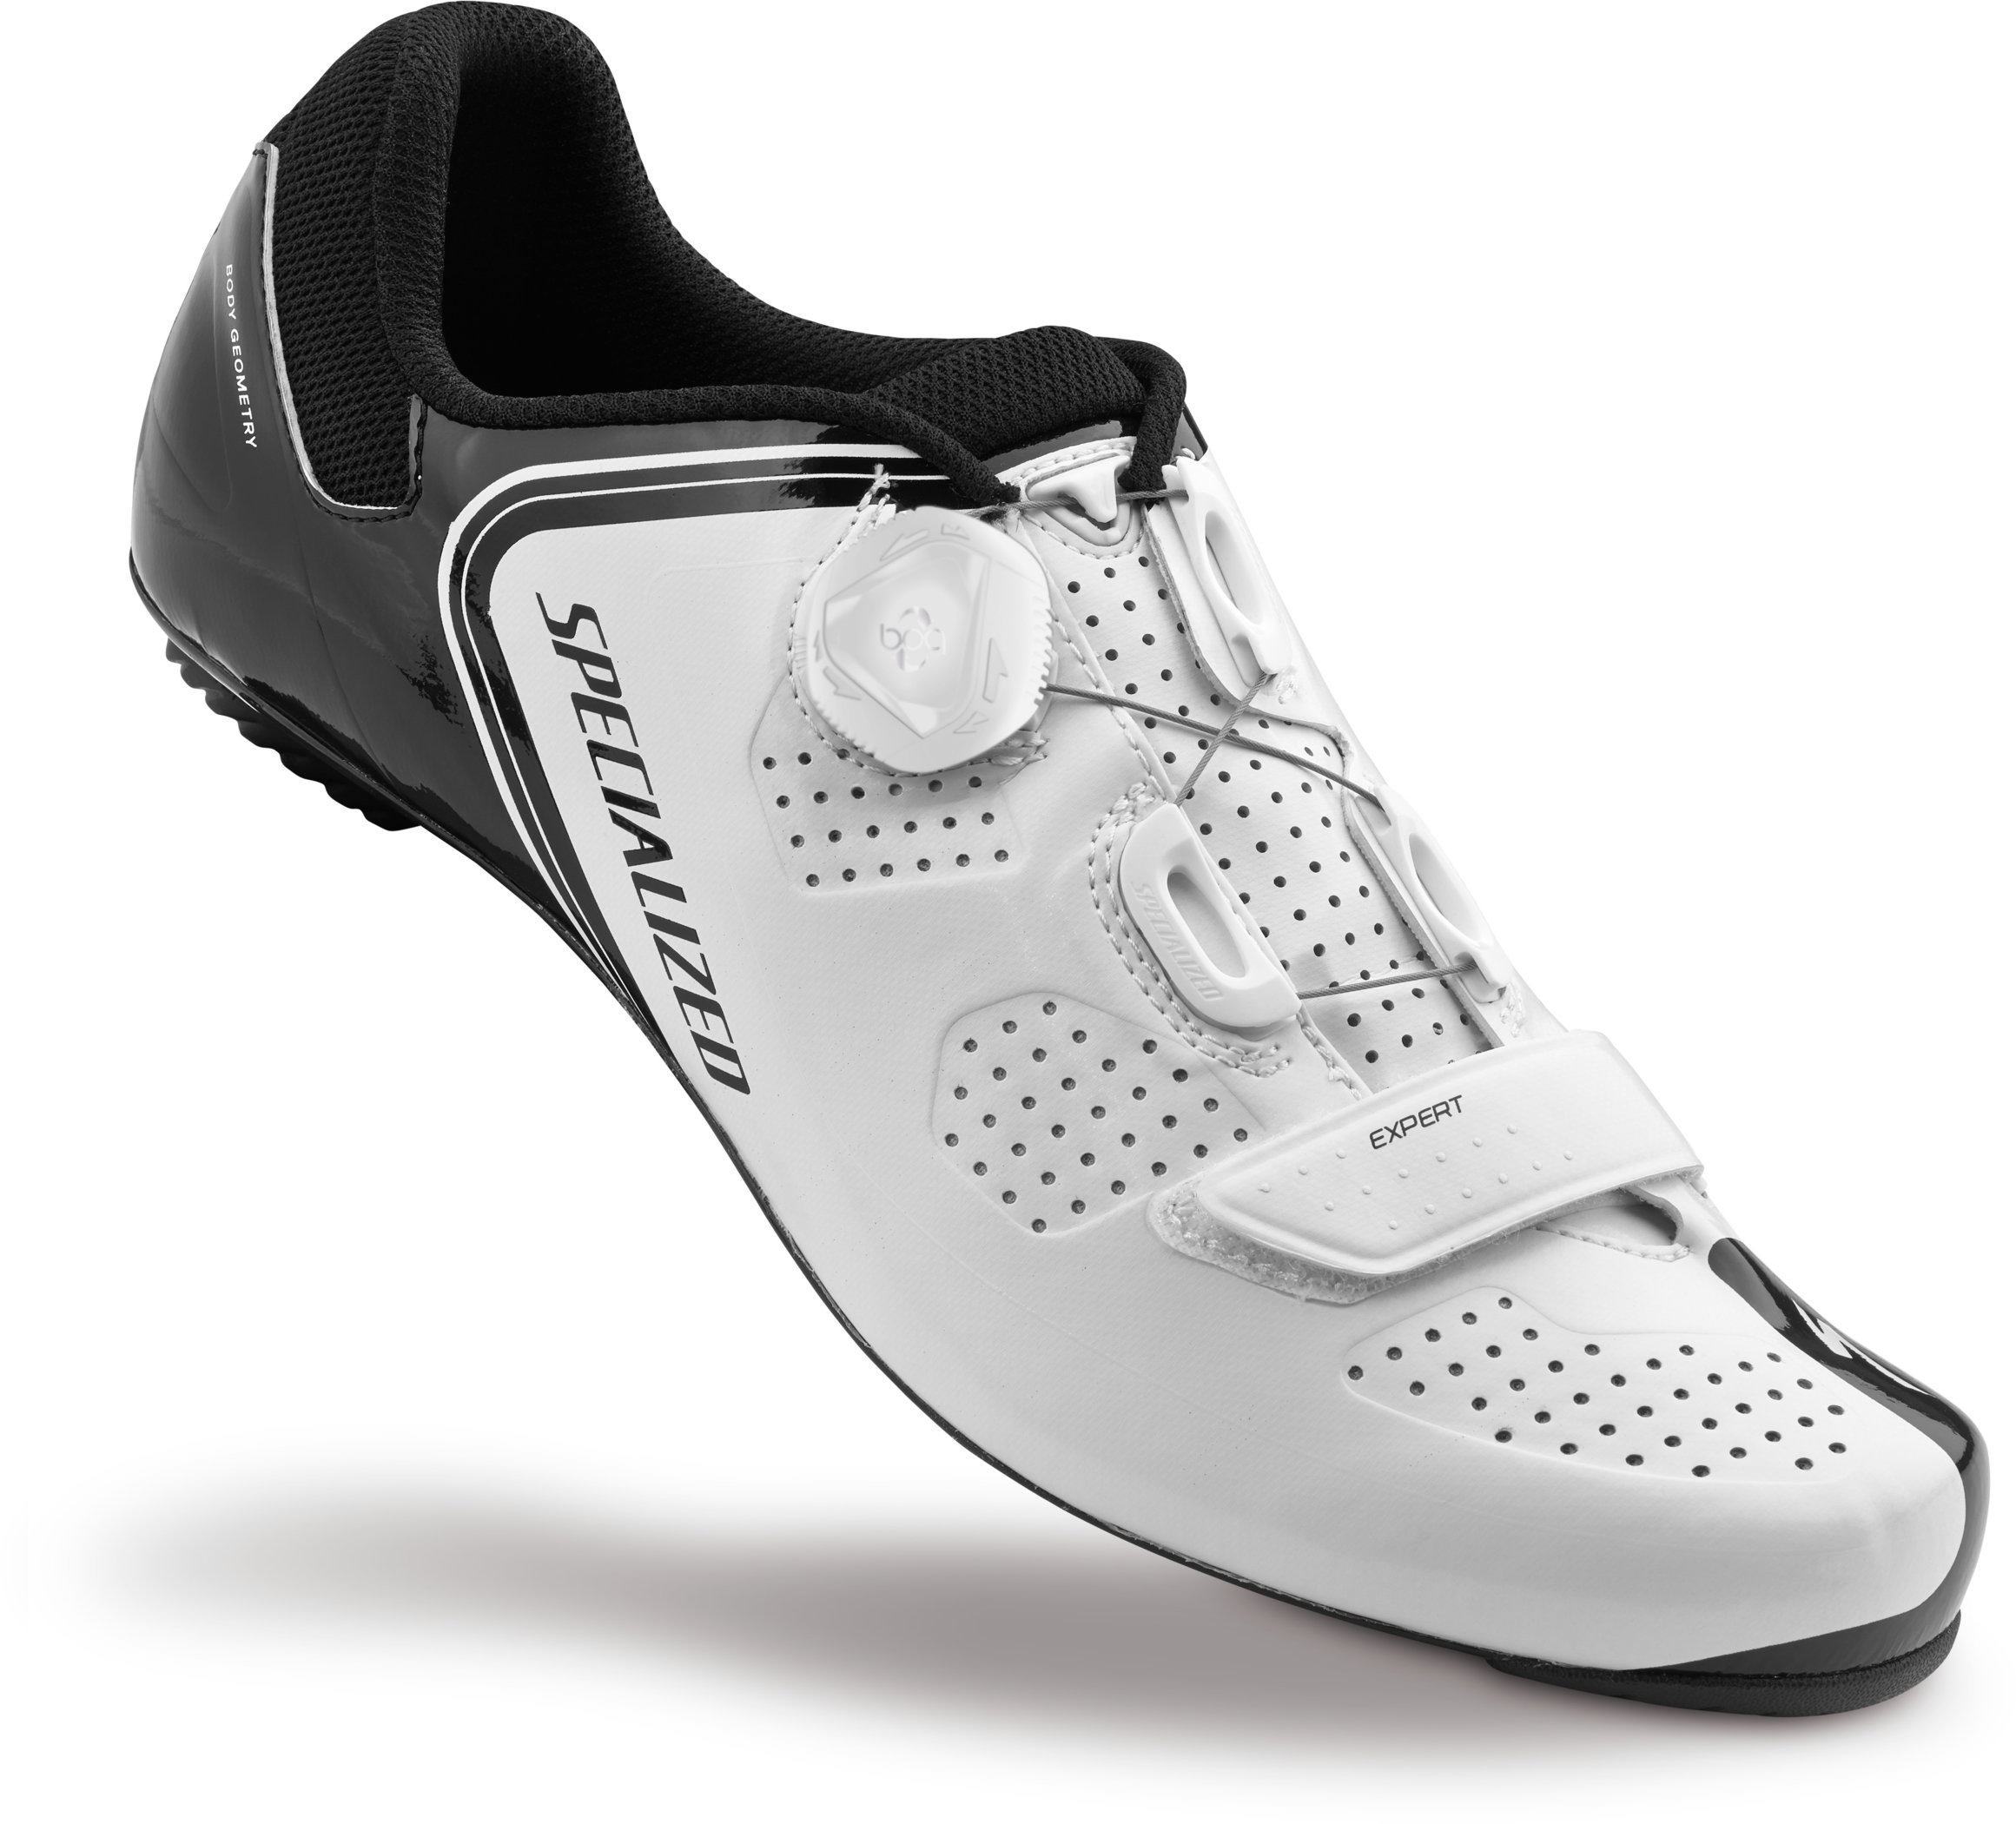 SPECIALIZED EXPERT RD SHOE WHT/BLK  38/5.75 - Bikedreams & Dustbikes